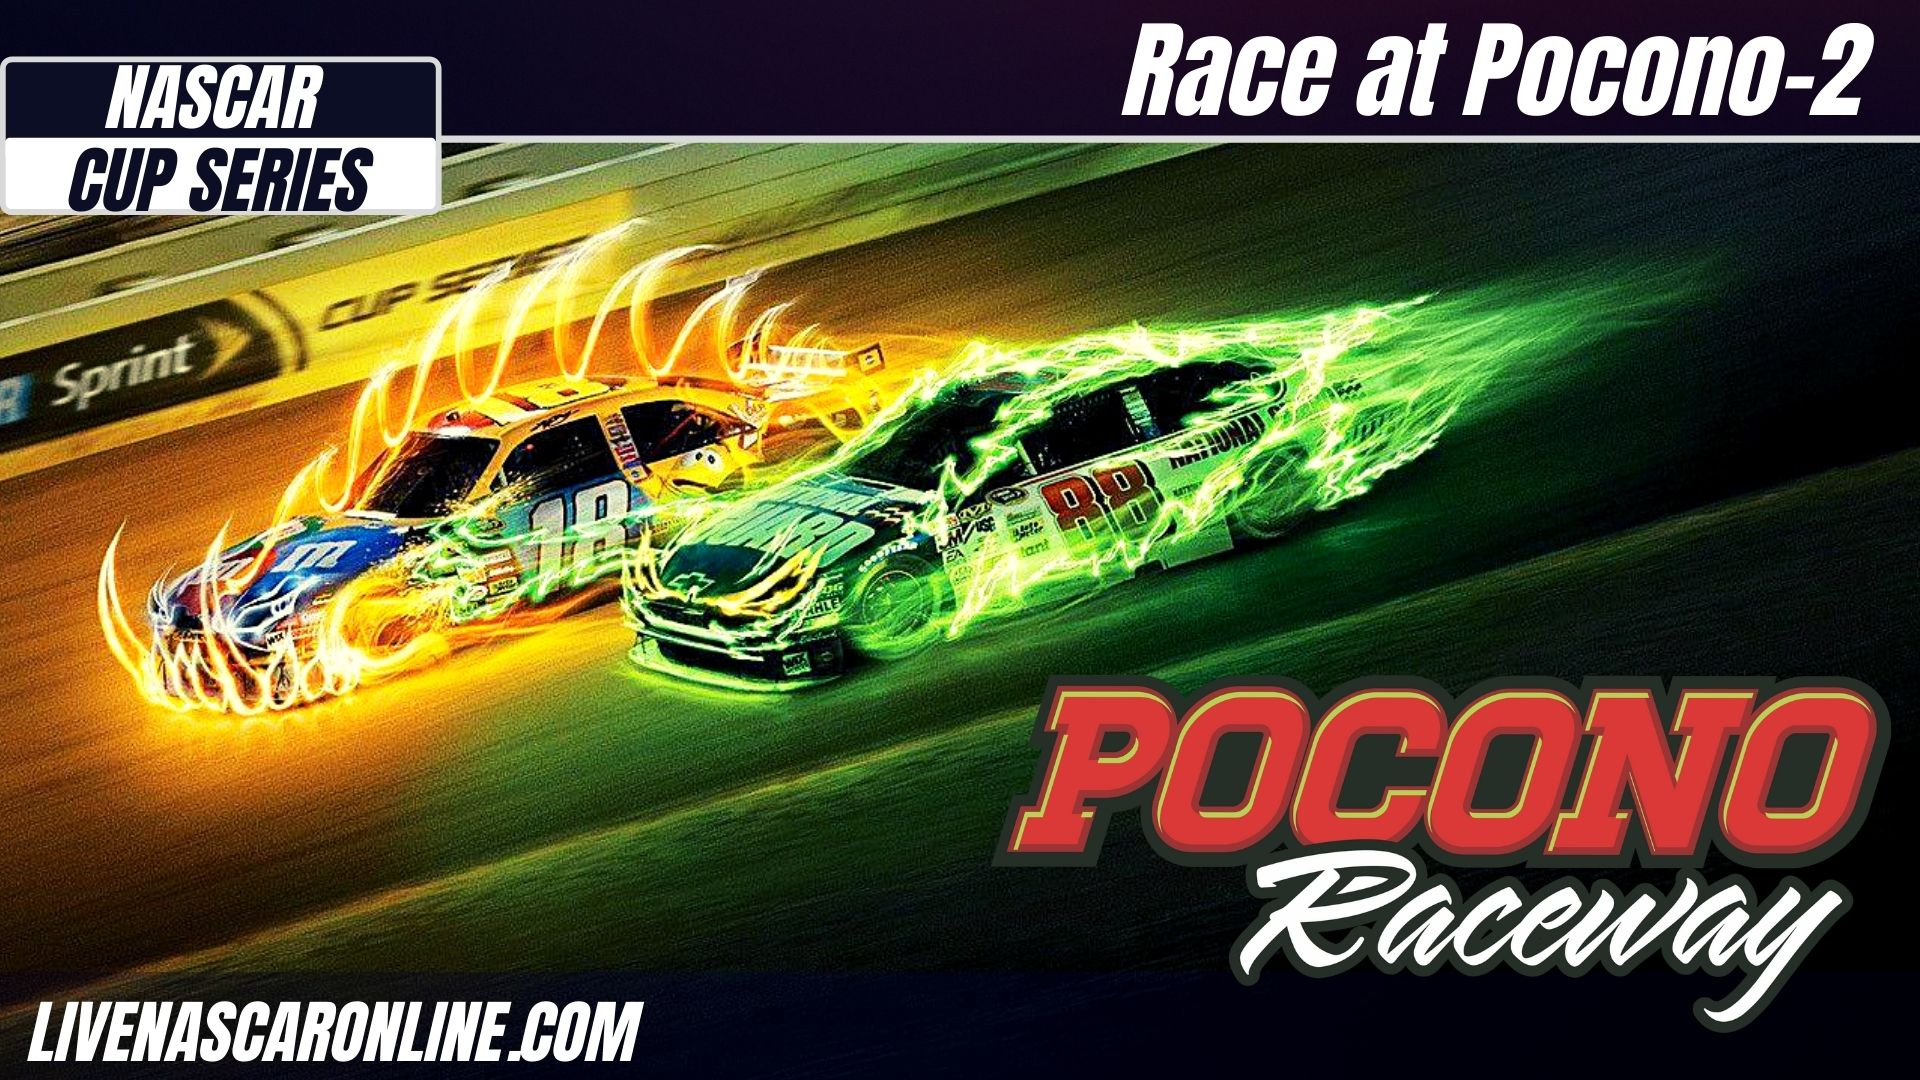 NASCAR Race at Pocono-2 Live Stream 2021